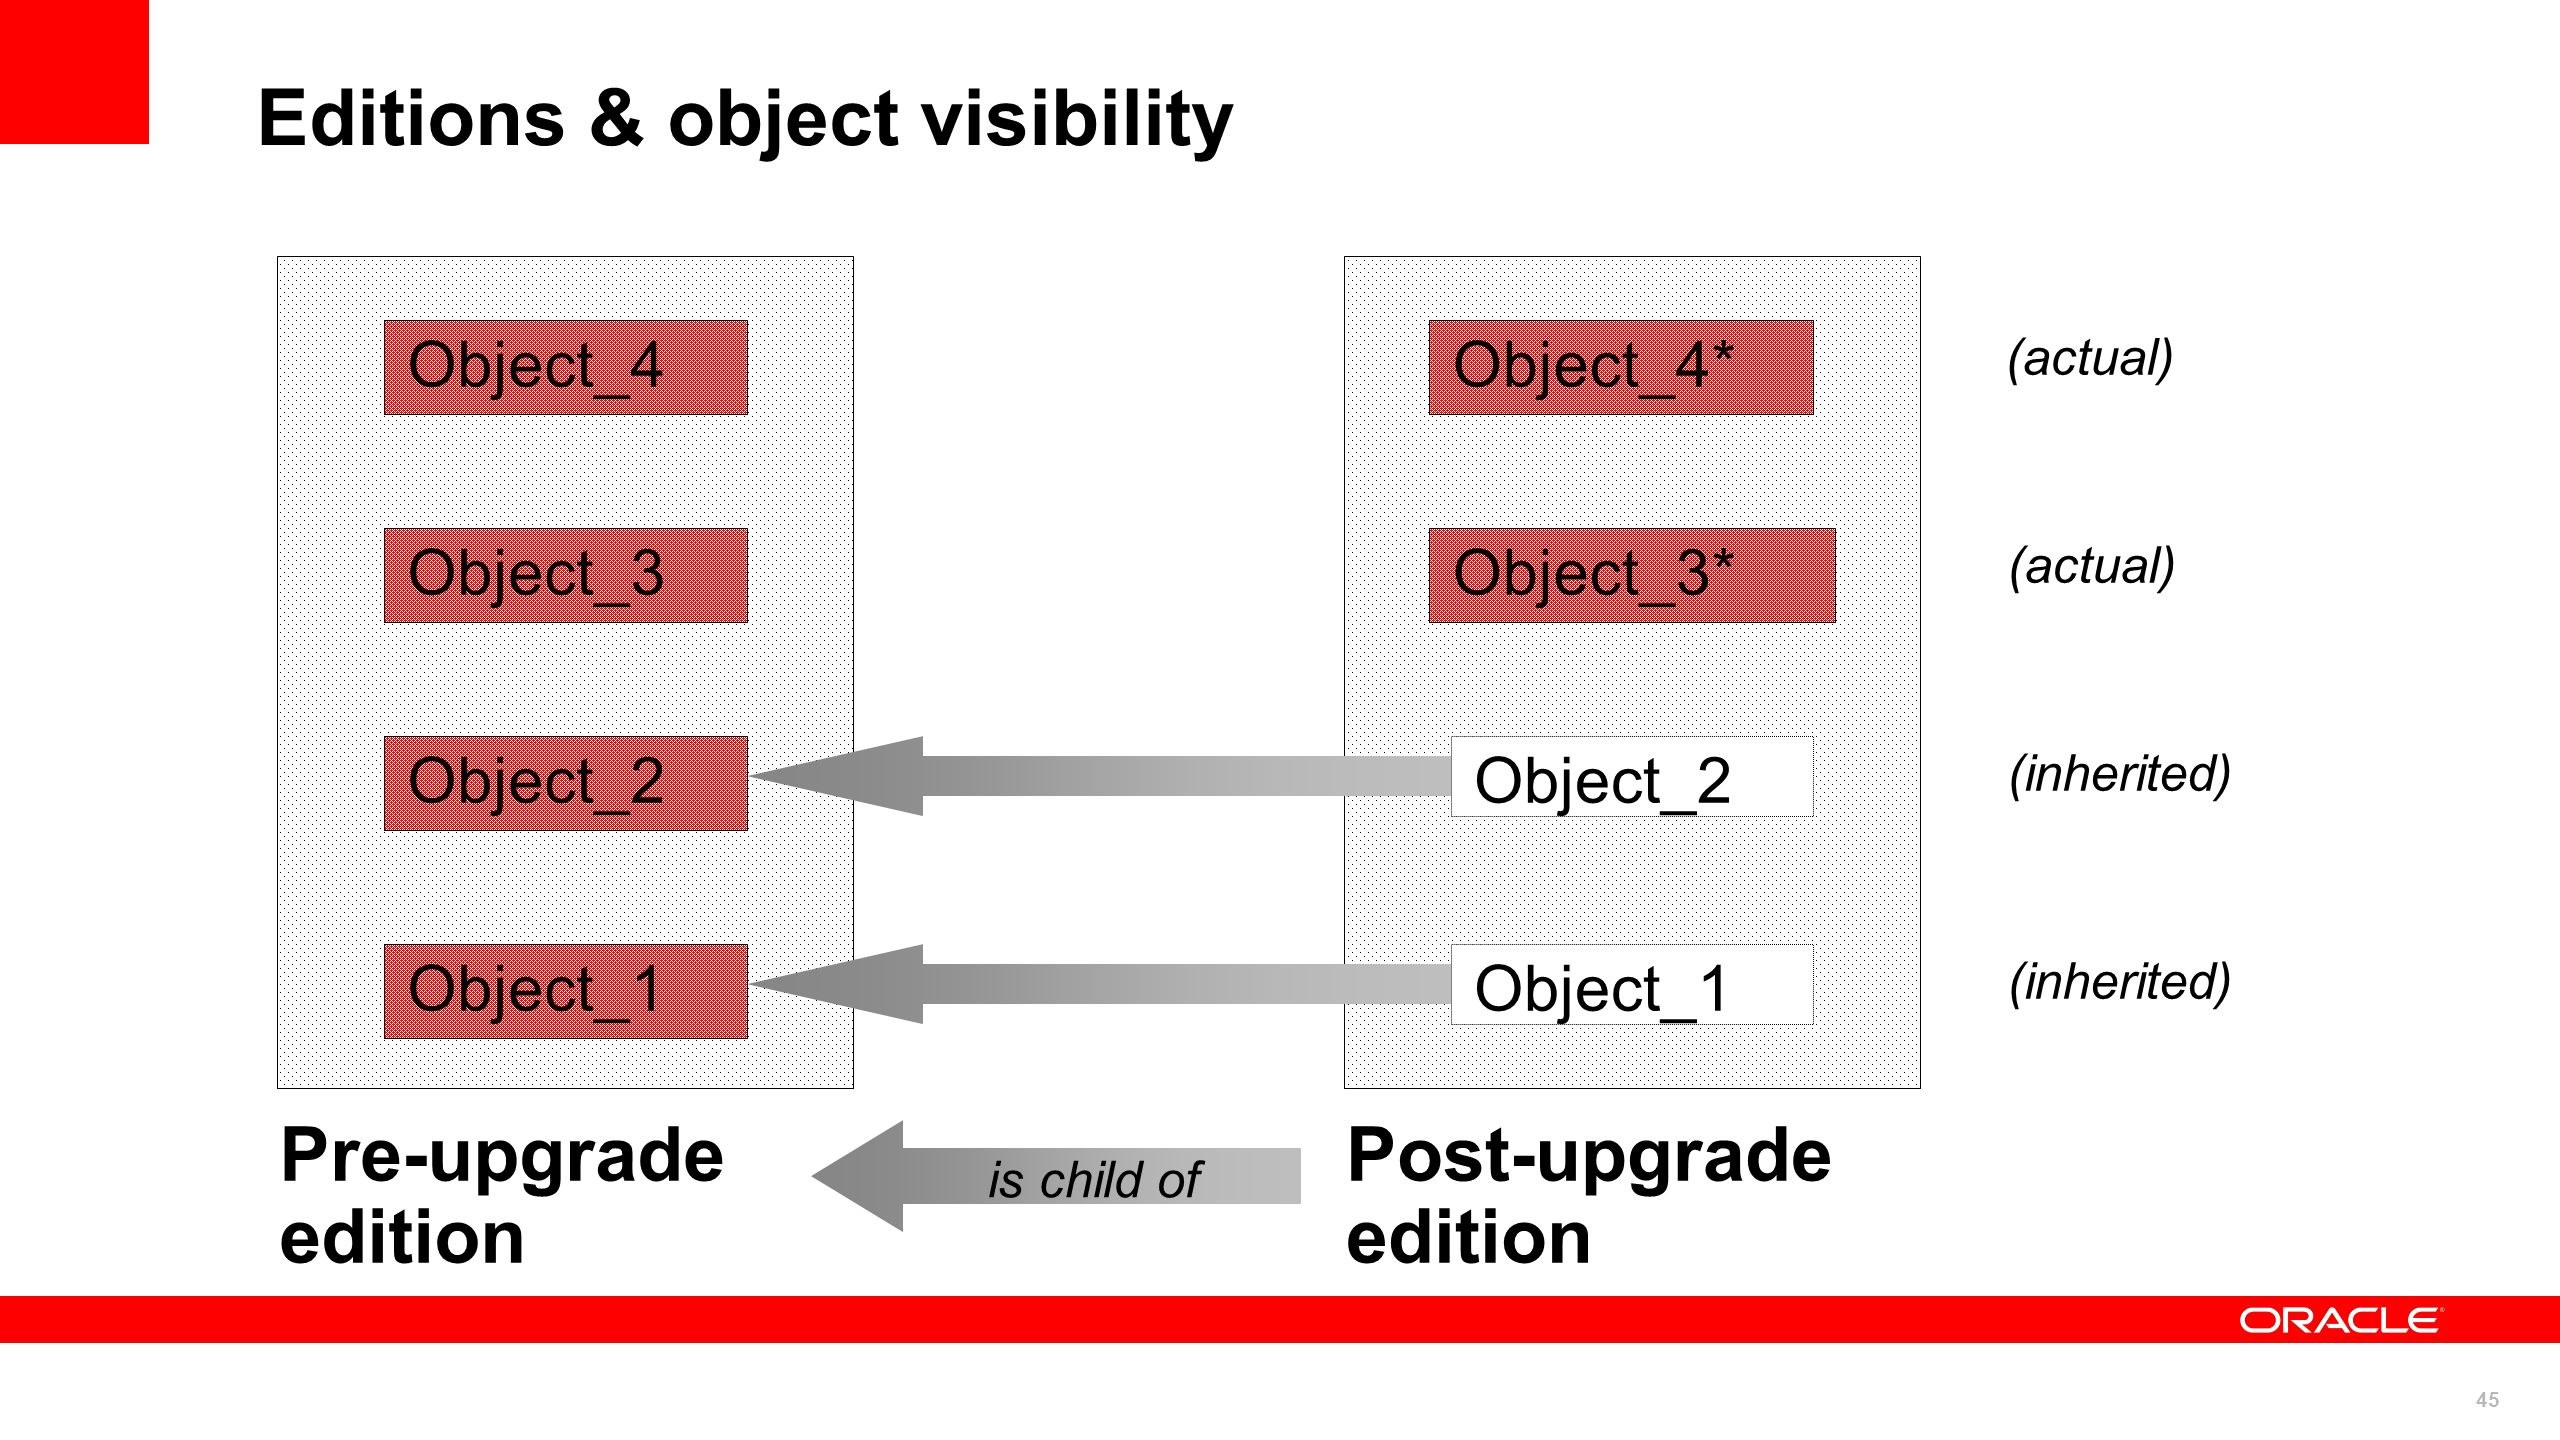 Editions & object visibility